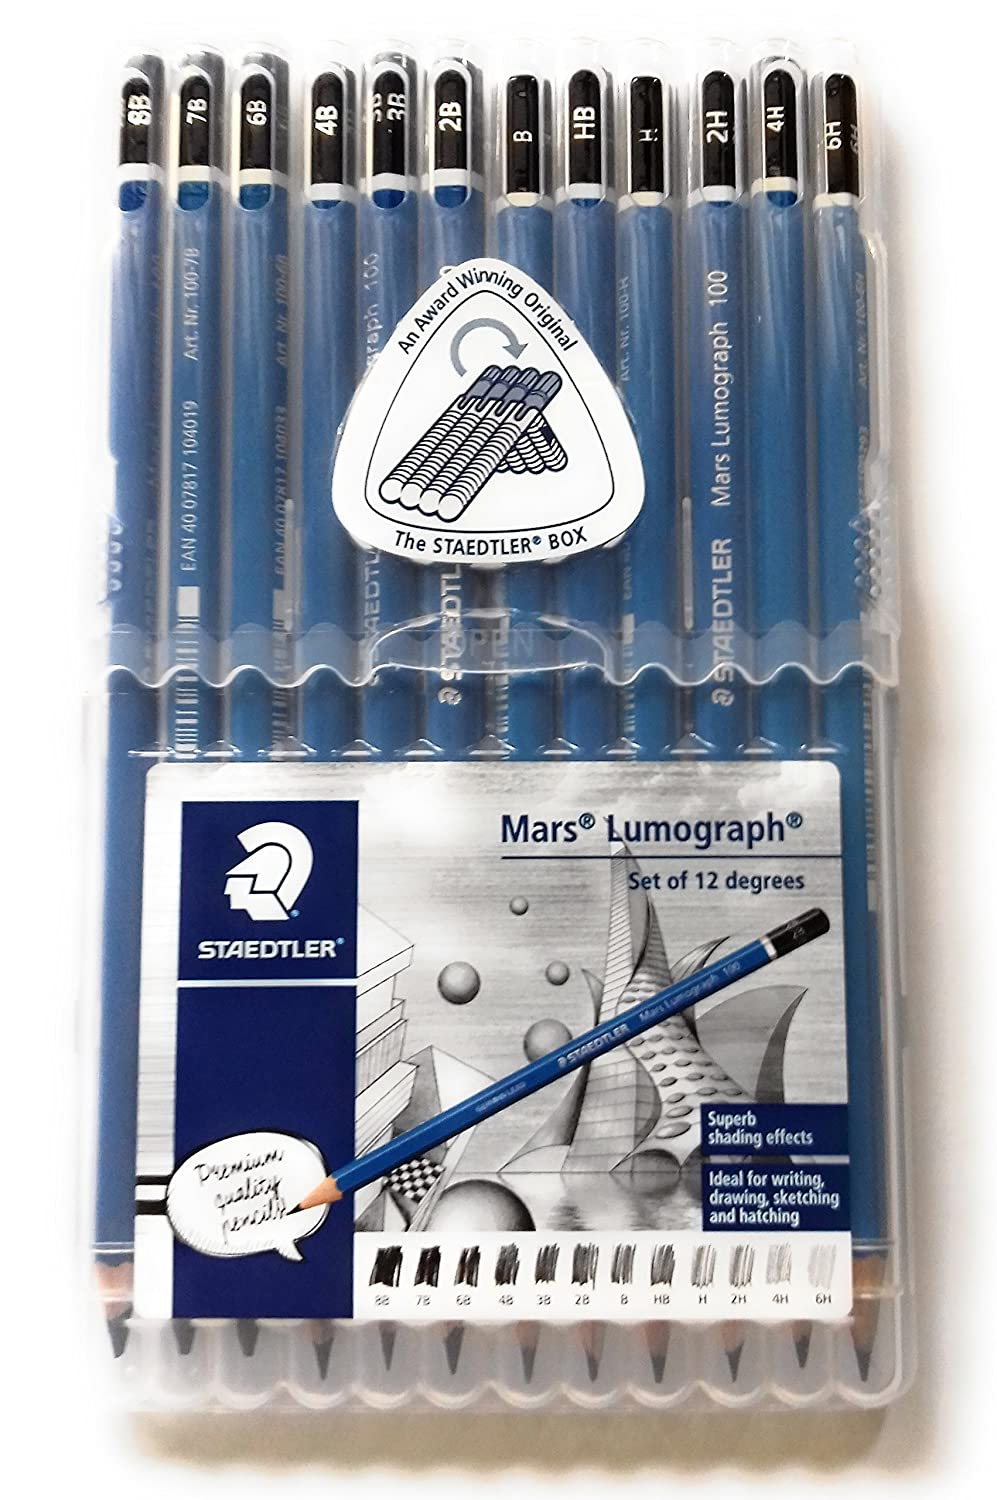 Wooden Lead Pencil By Staedtler Mars Lumograph - Pack of 12 Degrees in Practical Plastic Storage Box Staedtler/Germany